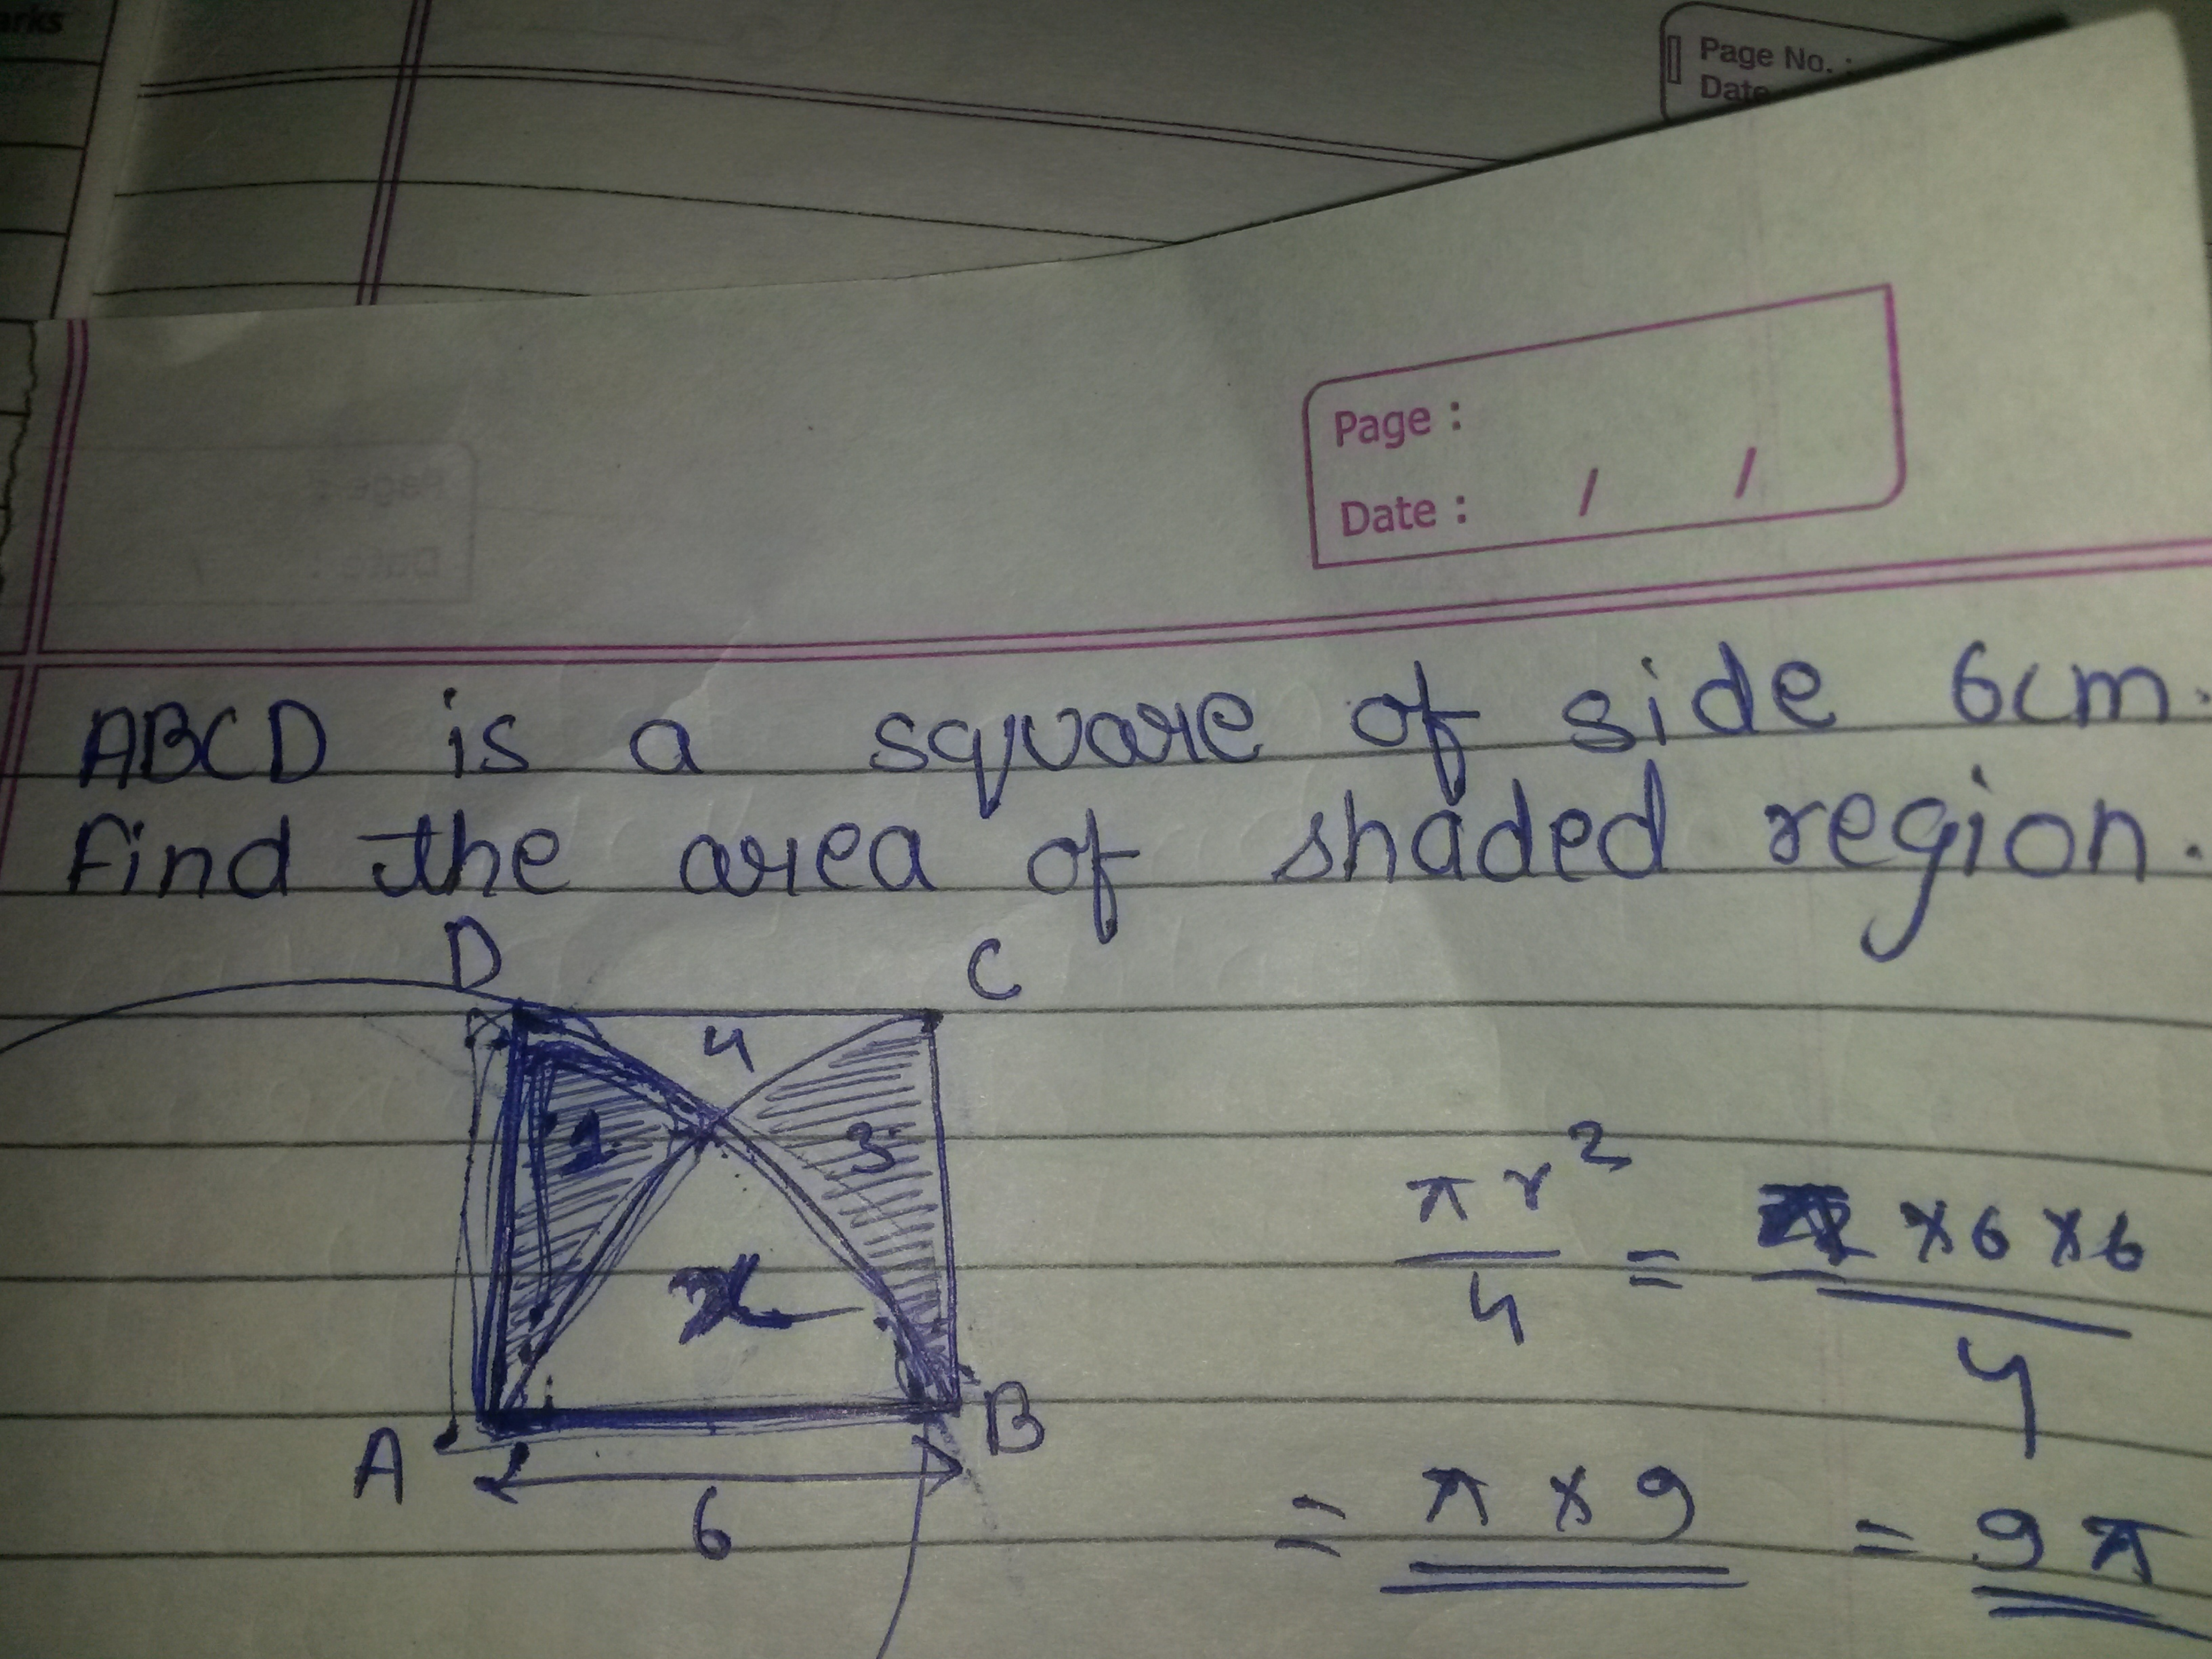 Abcd Is A Square Of Side 6cm Find The Area Of Shaded